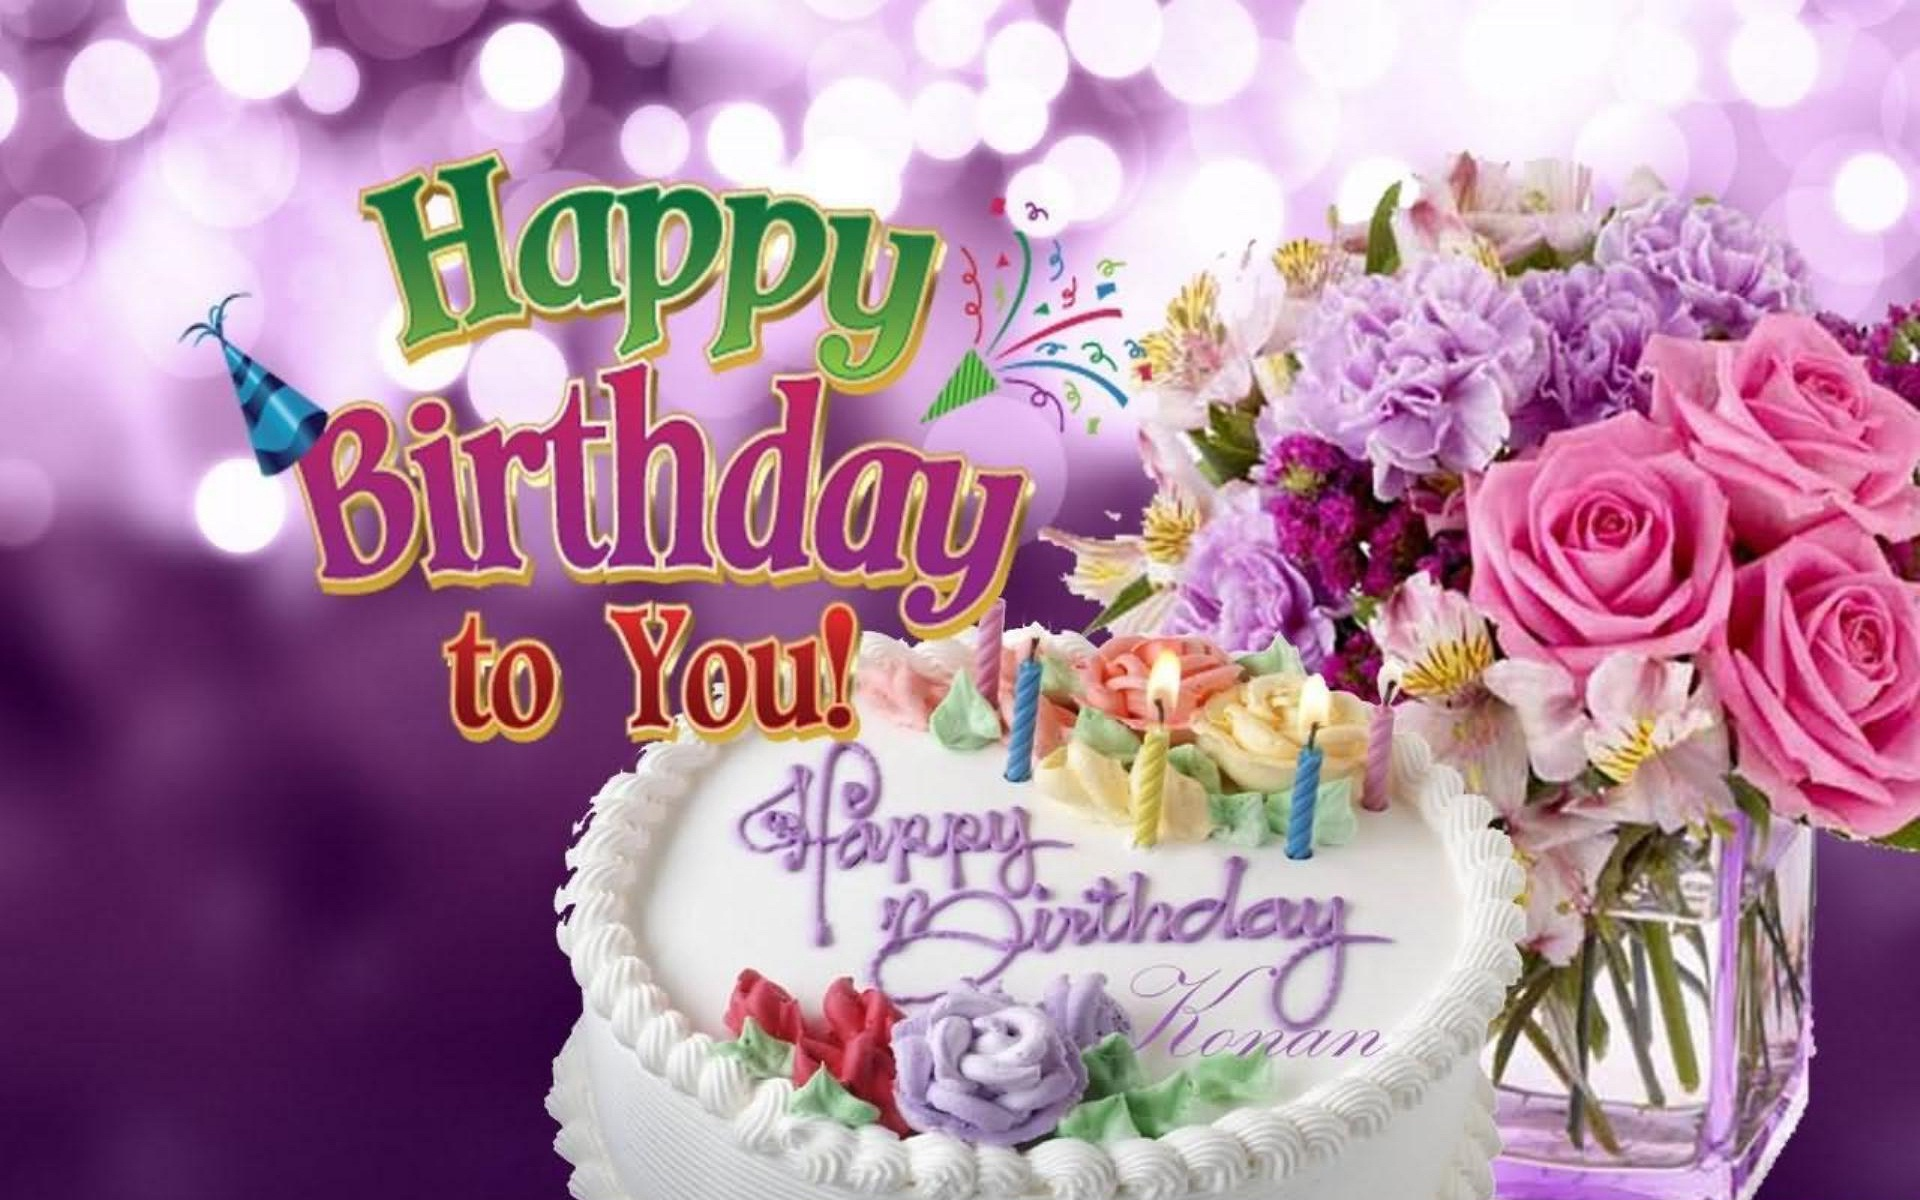 free birthday wallpaper images ; birthday-wishes-wallpaper-1